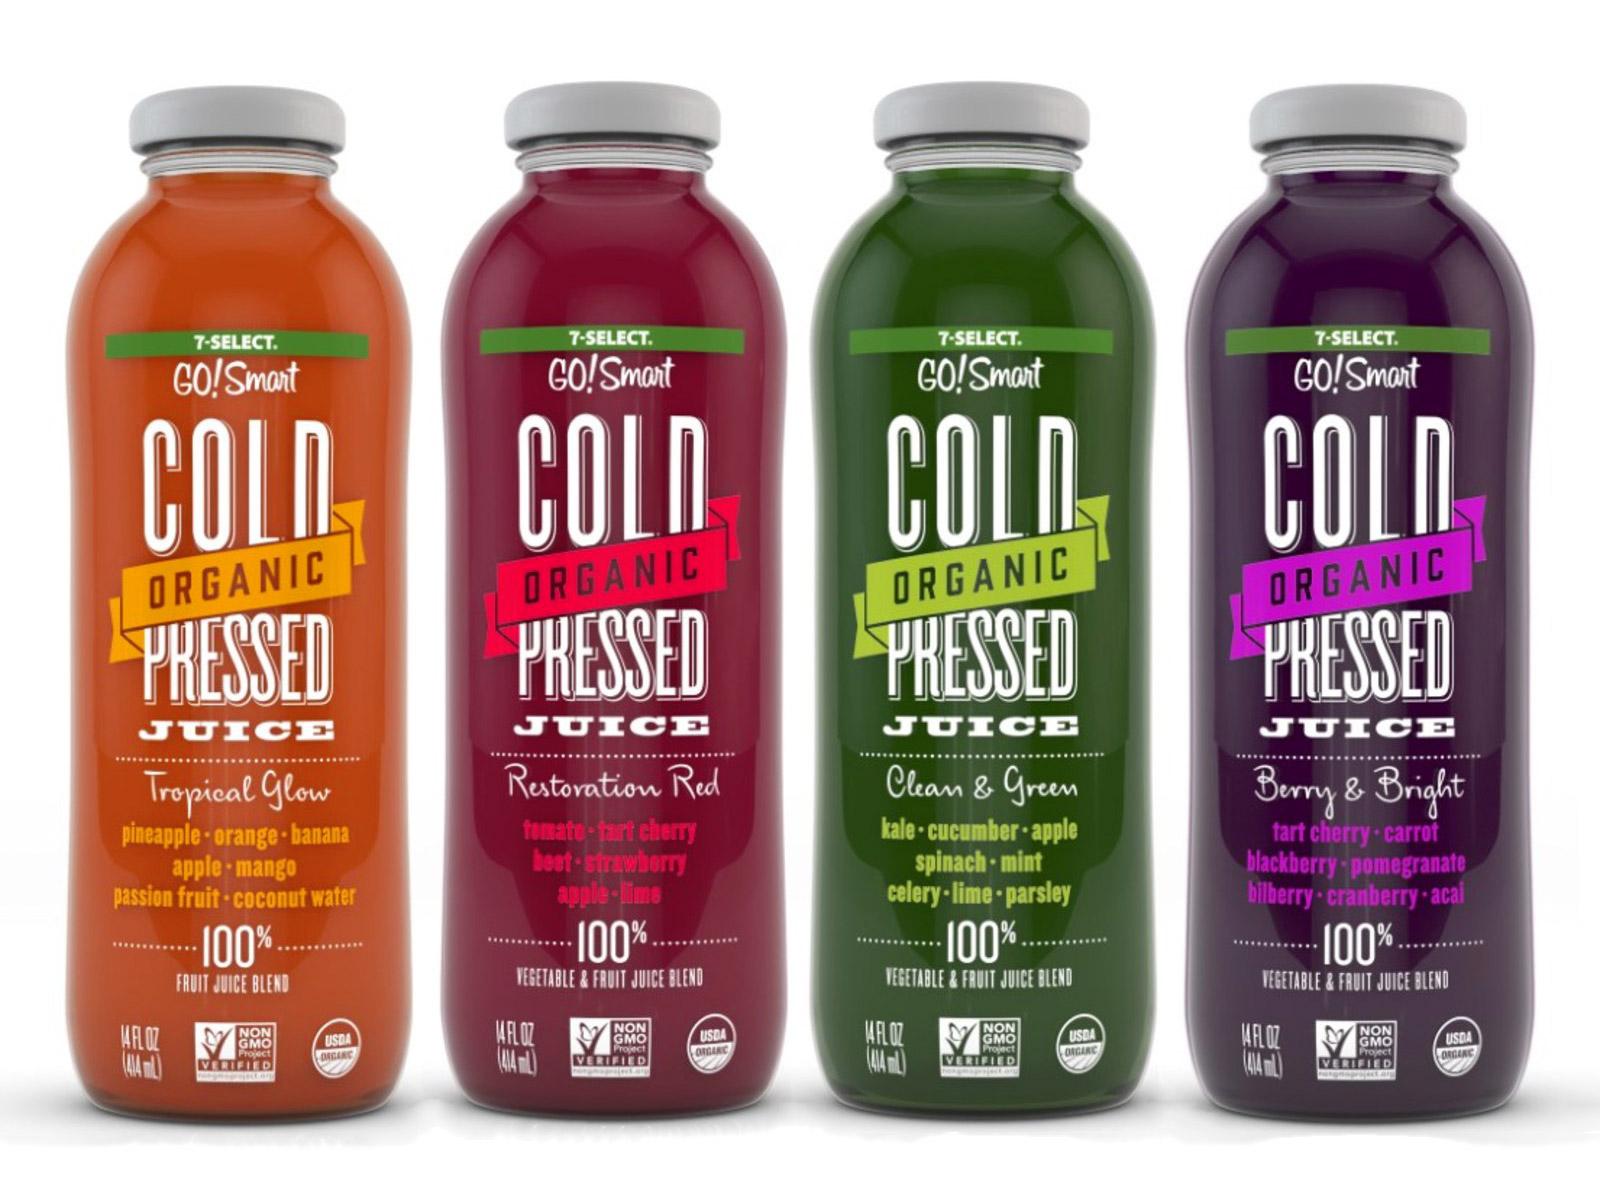 7-Eleven Launches Its Own Line of Organic, Cold-Pressed Juices